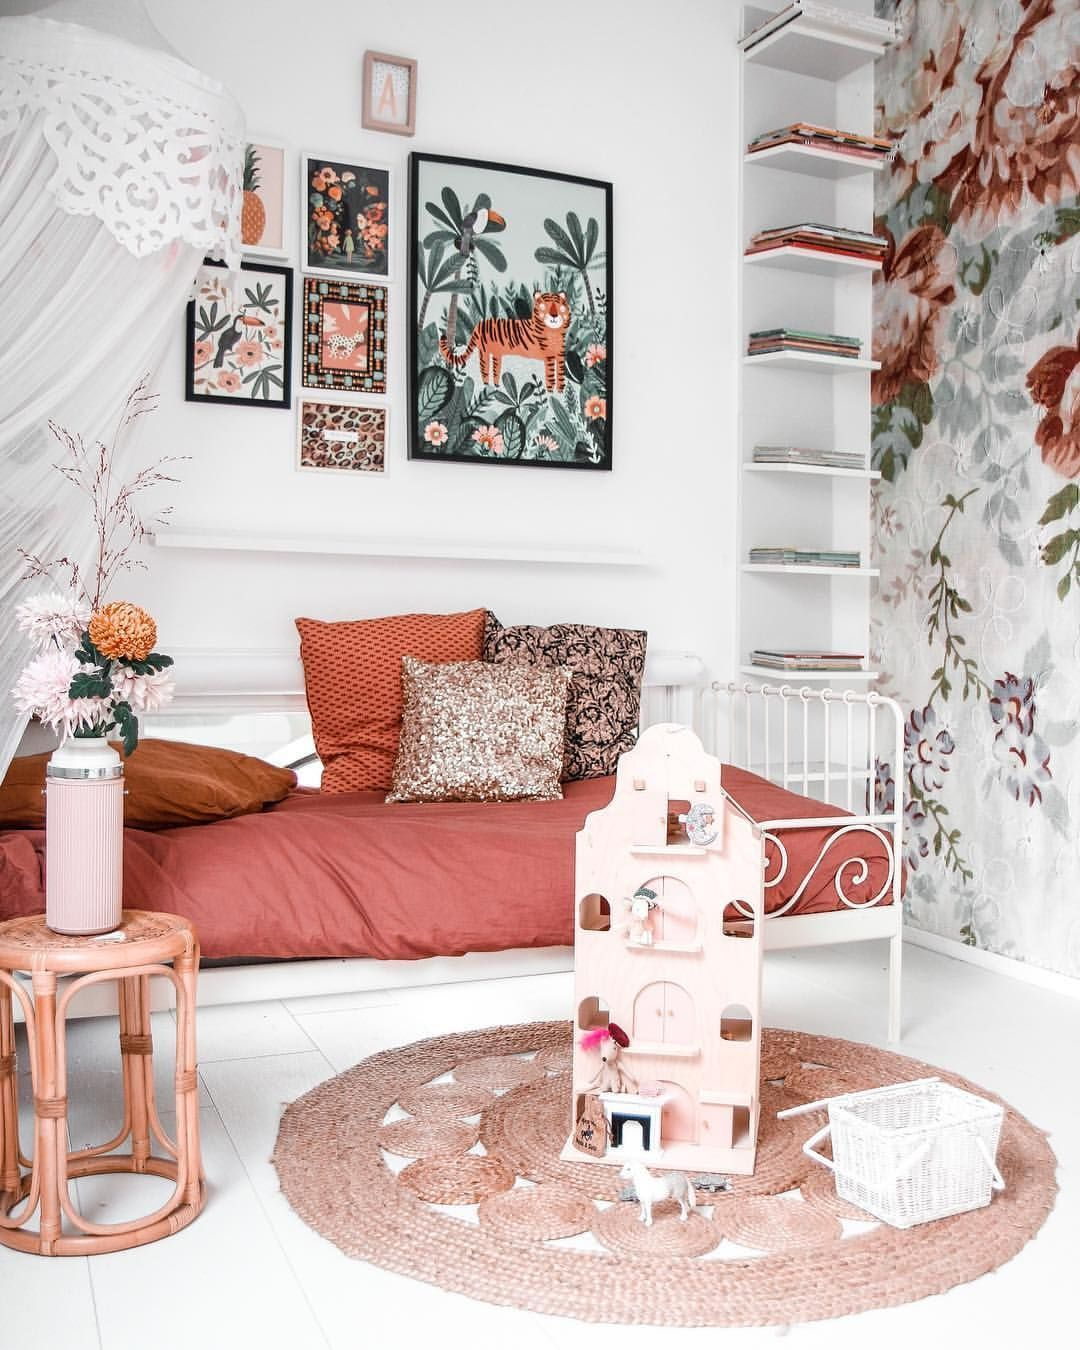 6 Easy Ways To Make Your Kid's Room Look More Beautiful